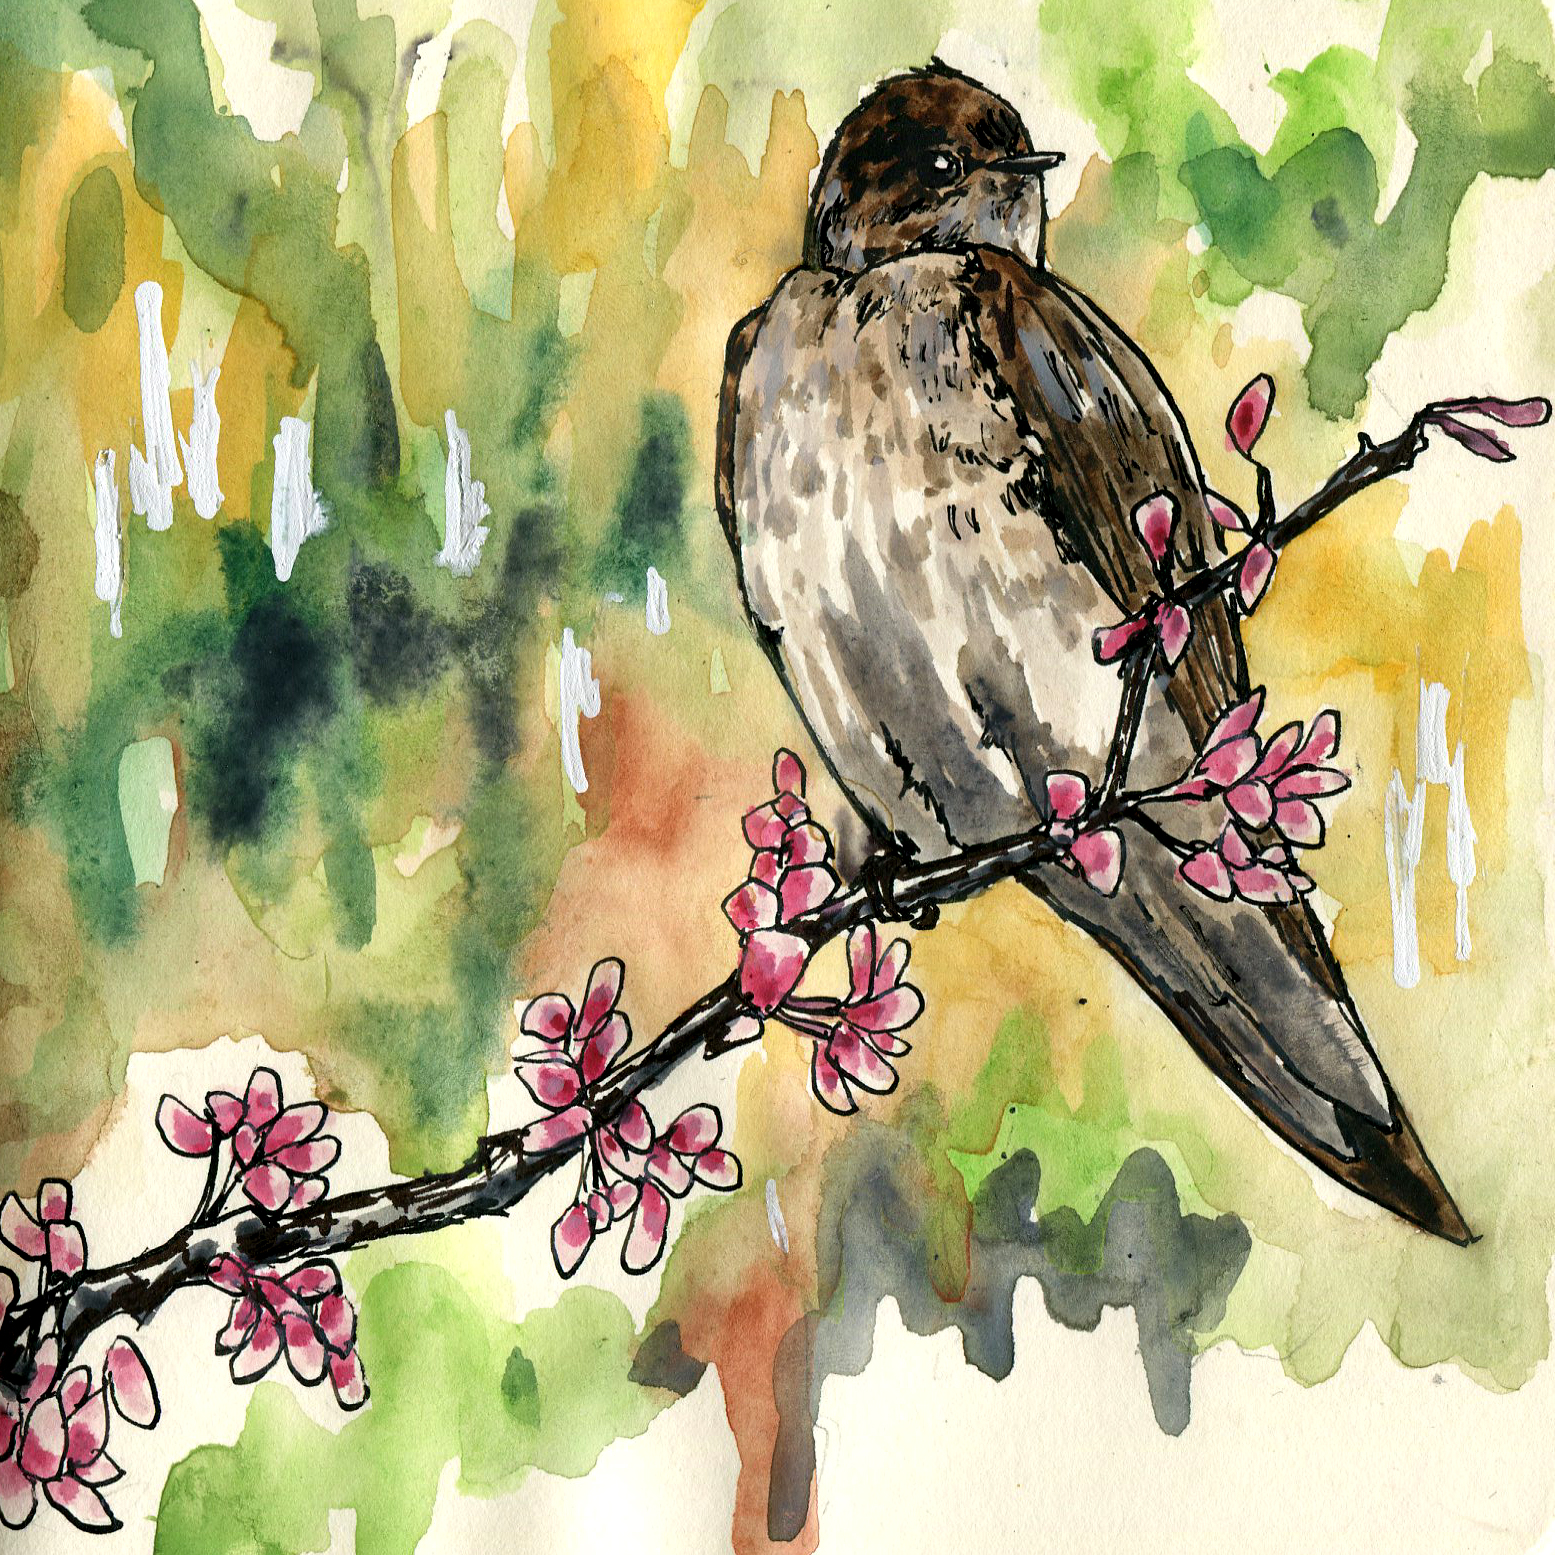 145. Northern Rough-winged Swallow